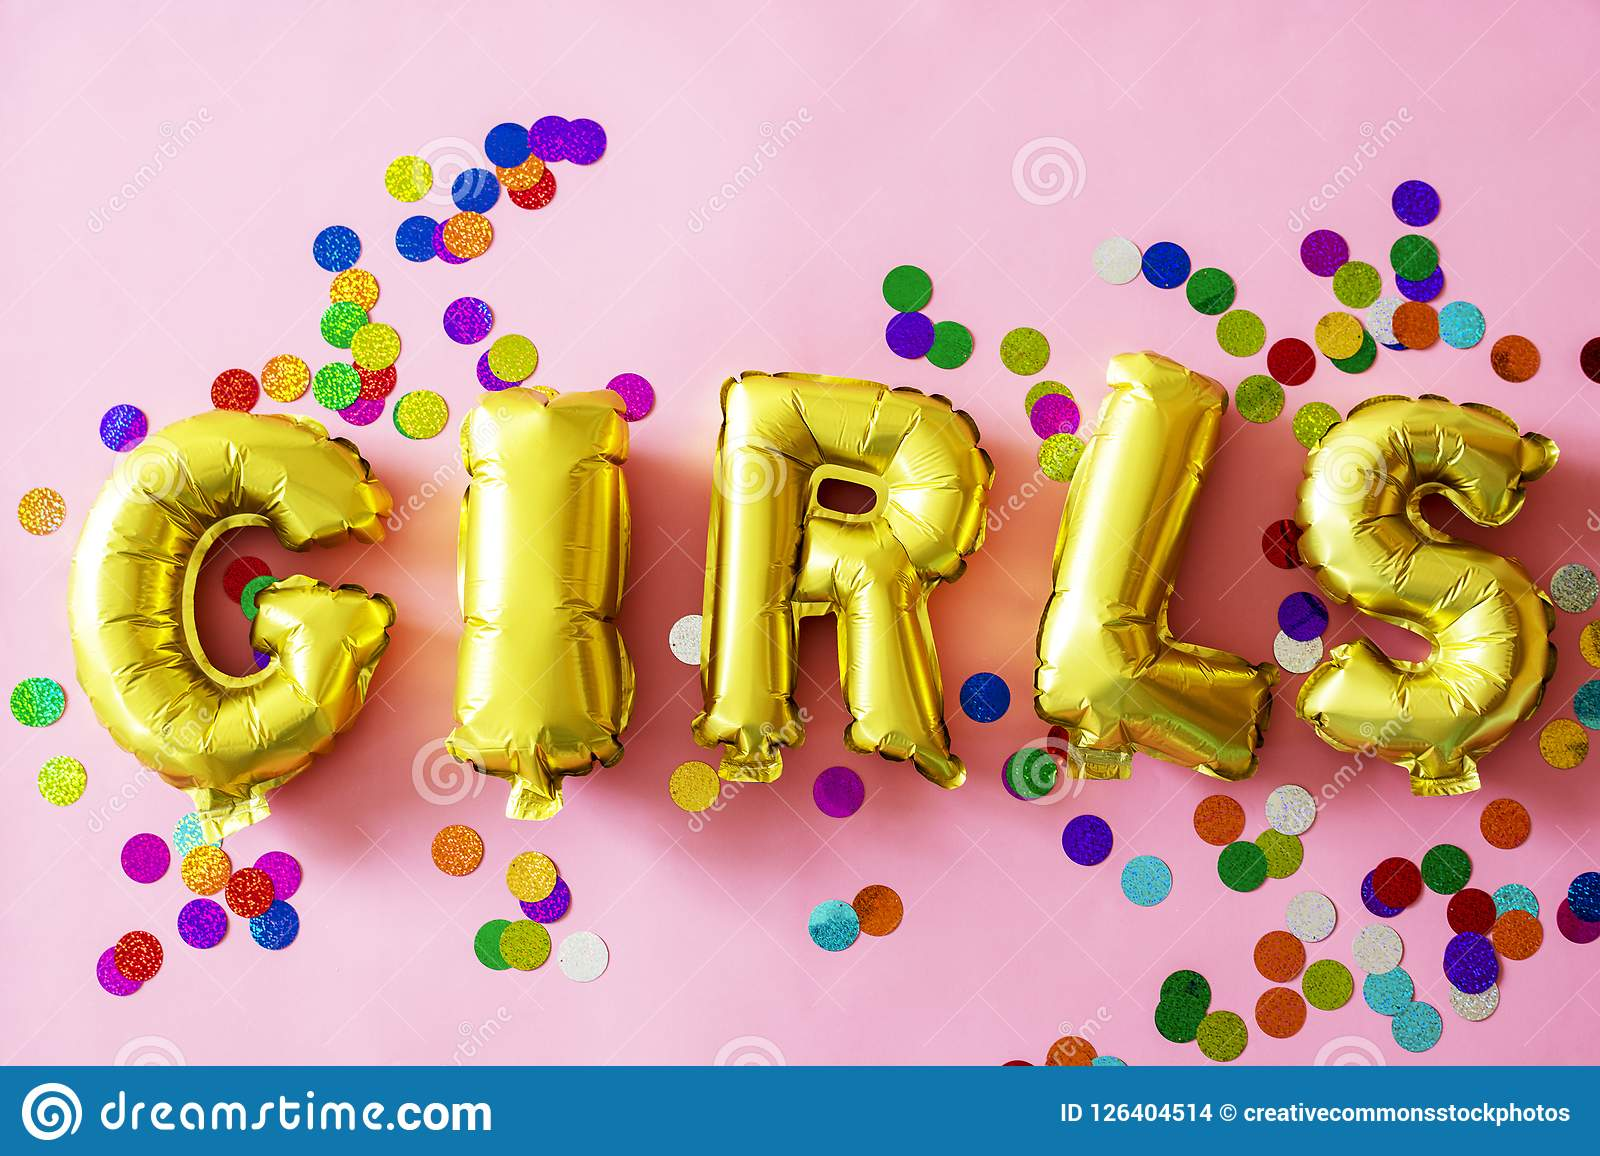 Free Public Domain CC0 Image: Gold Girls Letter Balloons On Pink ...